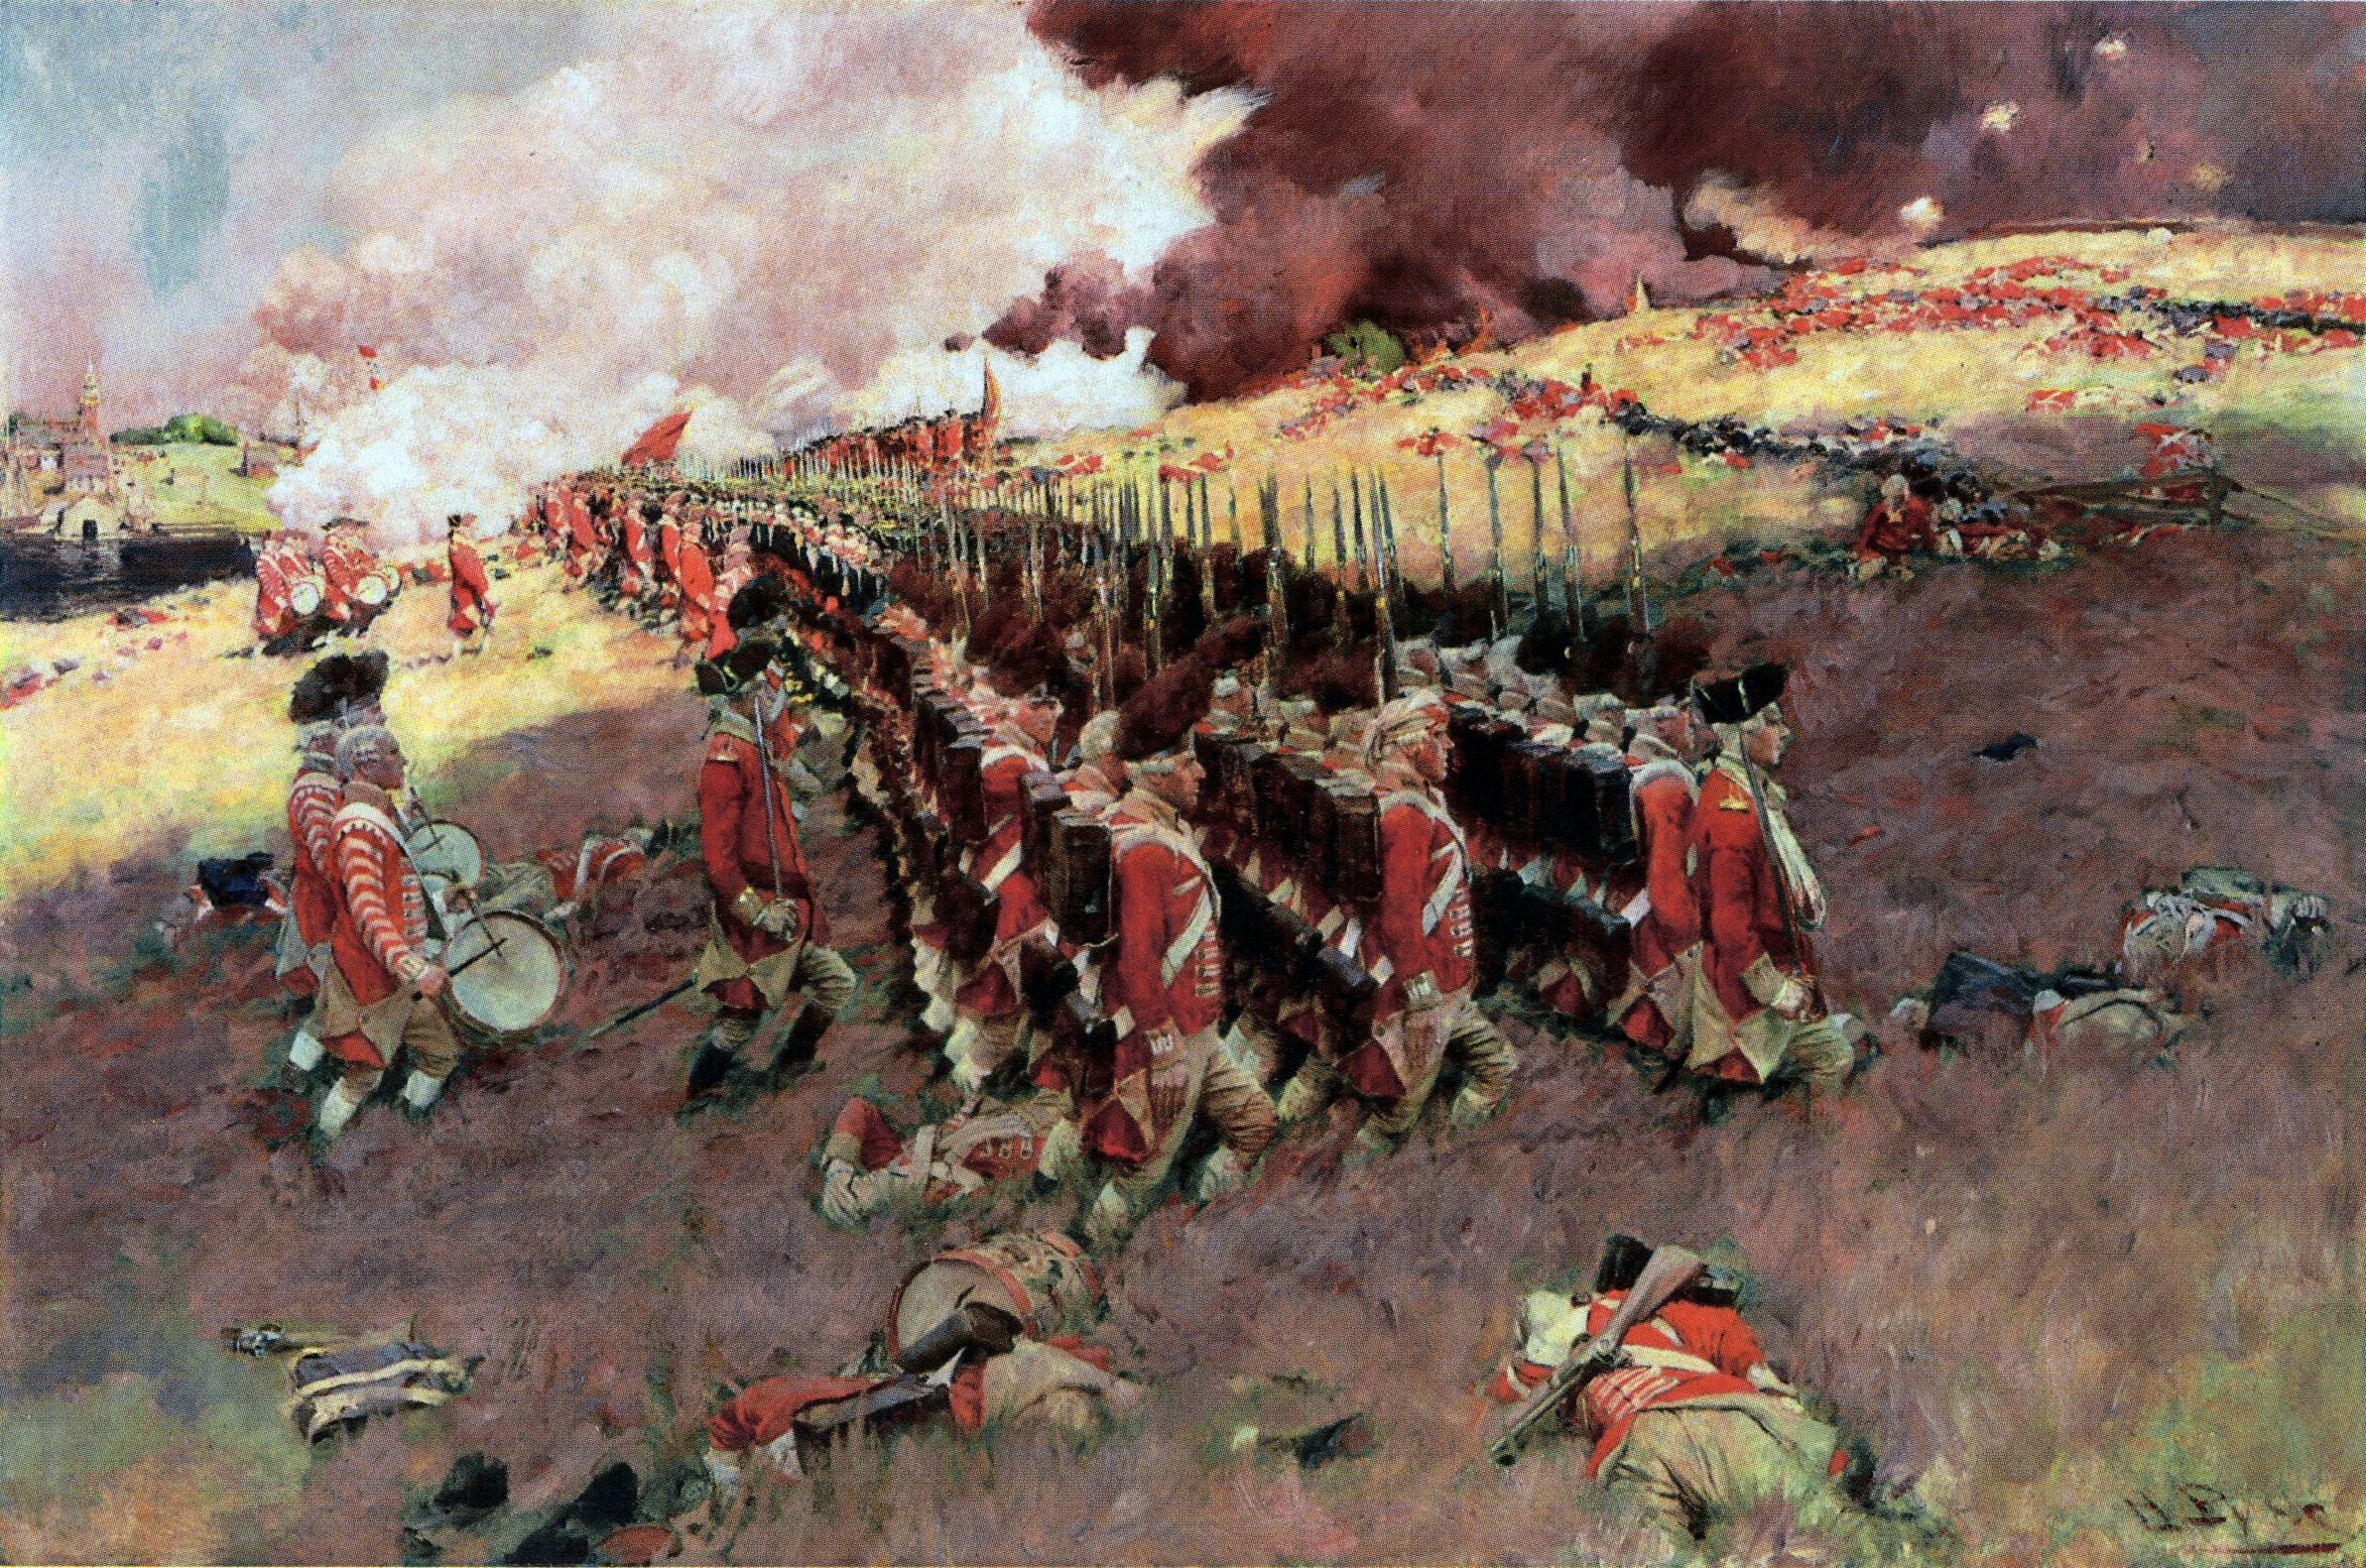 The Battle of Bunker Hill by Howard Pyle